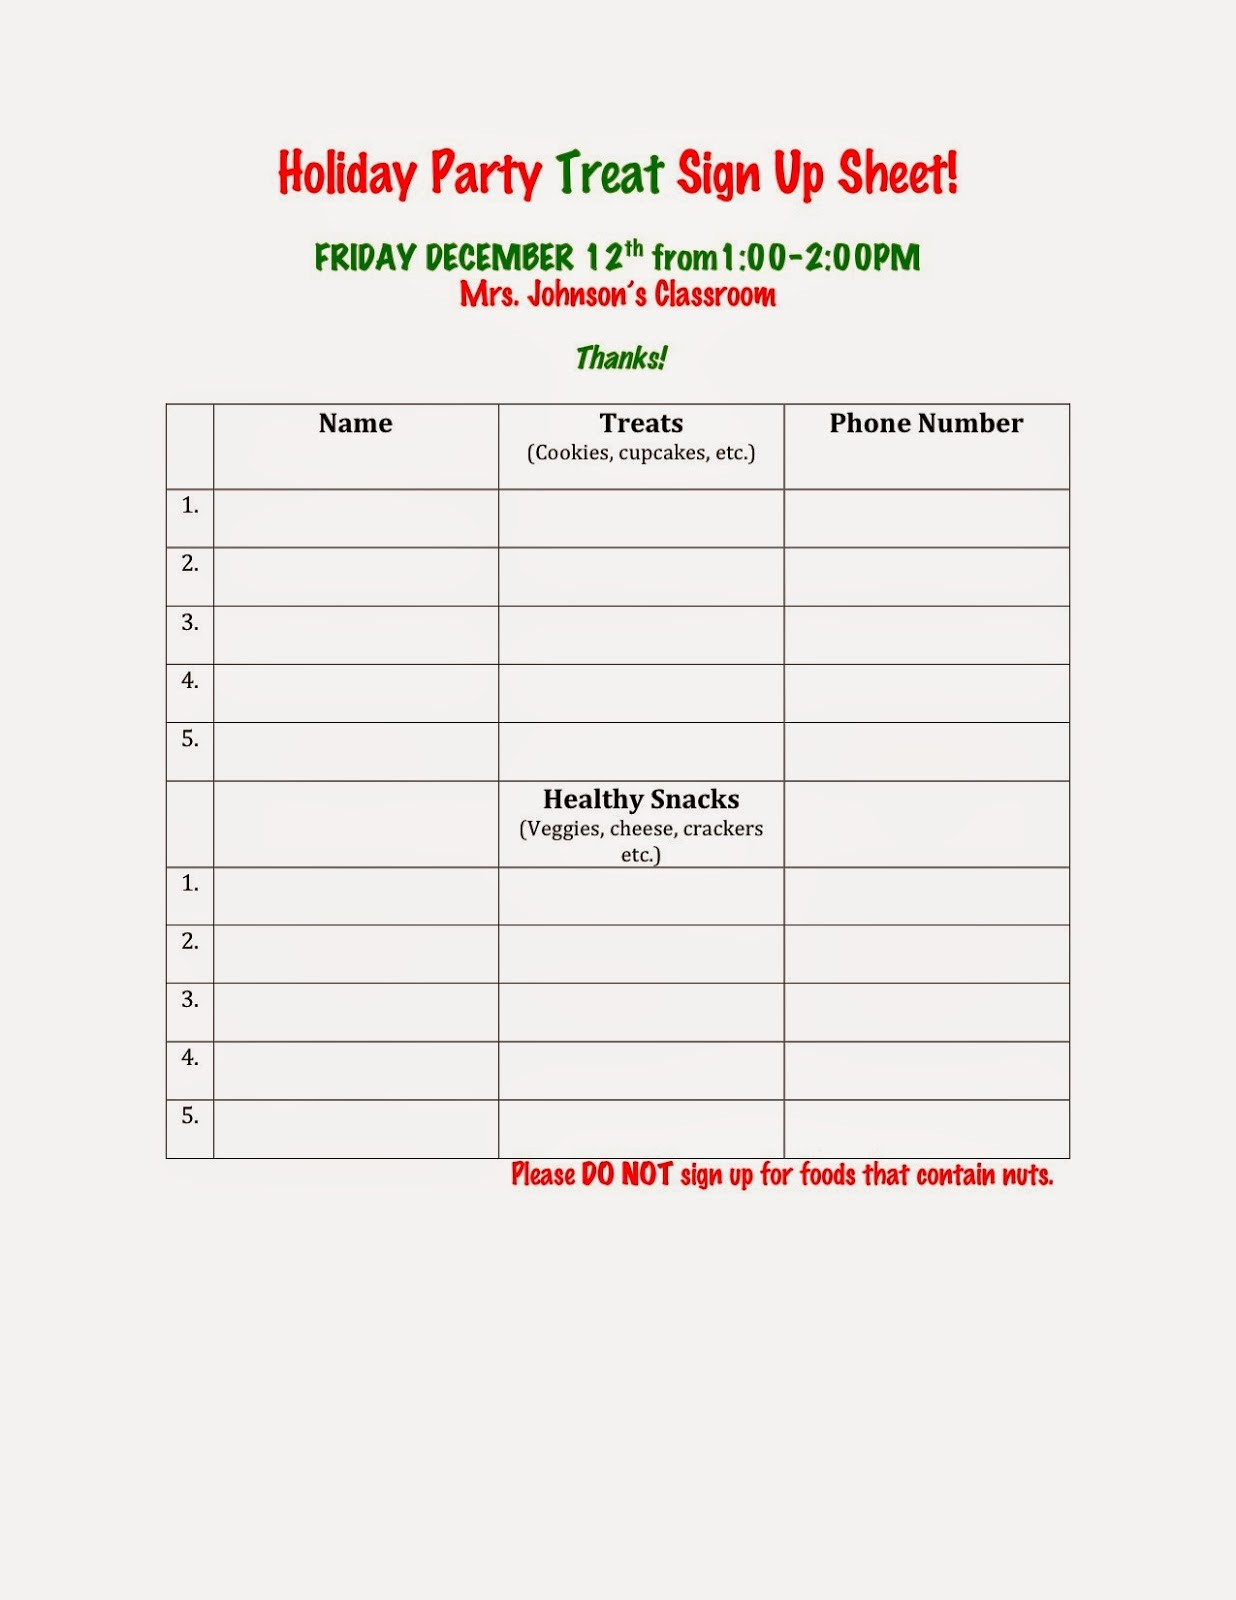 Holiday Sign Up Sheet Templates Luxury How to Make A Signup Sheet Bamboodownunder